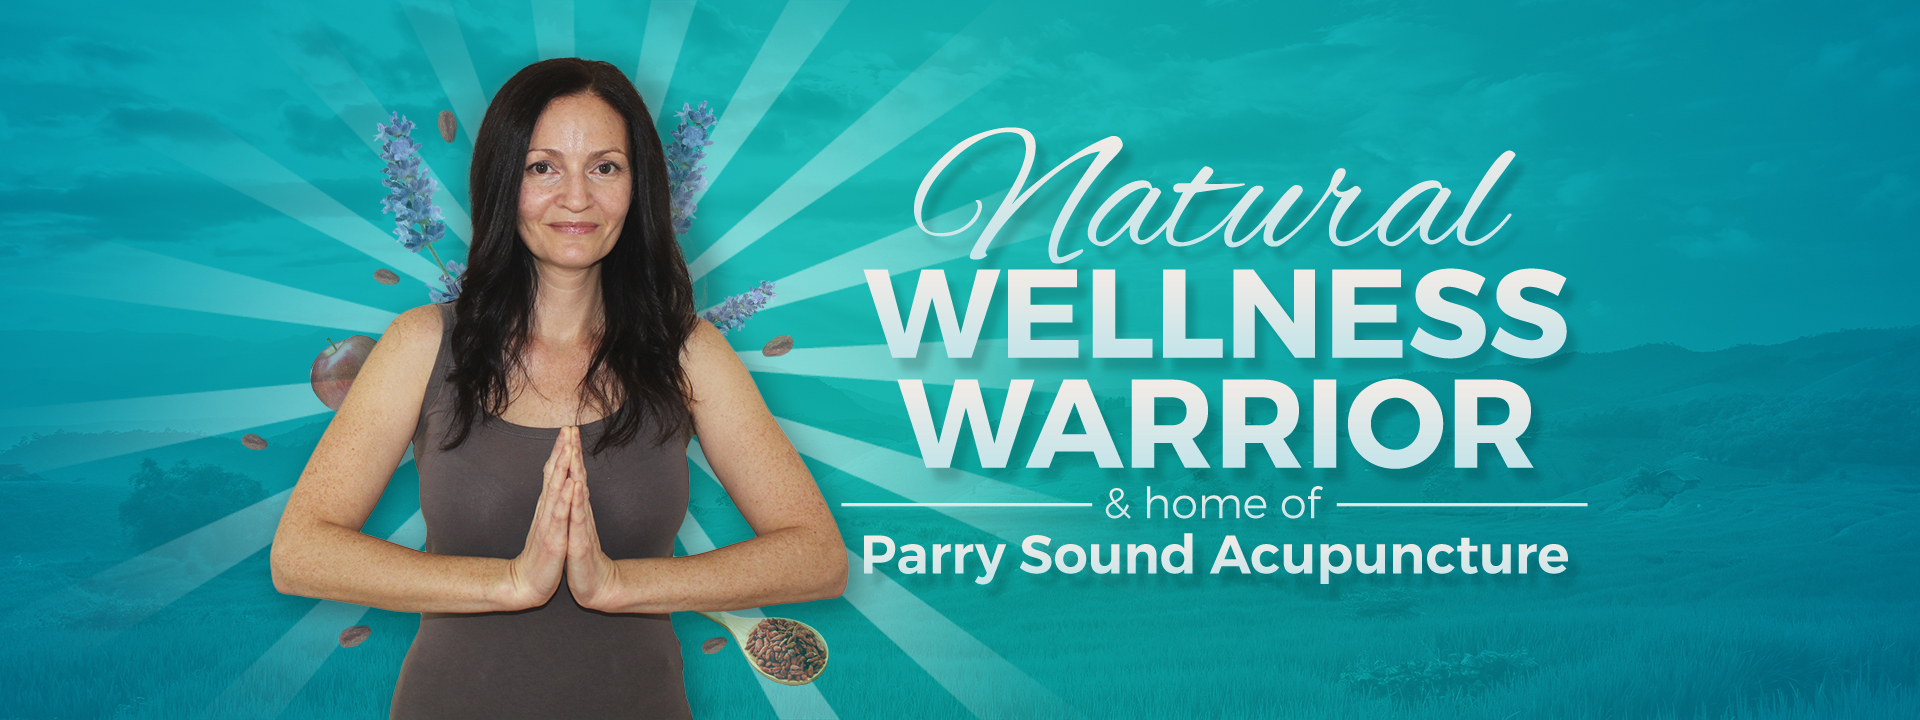 Natural Wellness Warrior Home of Parry Sound Acupuncture